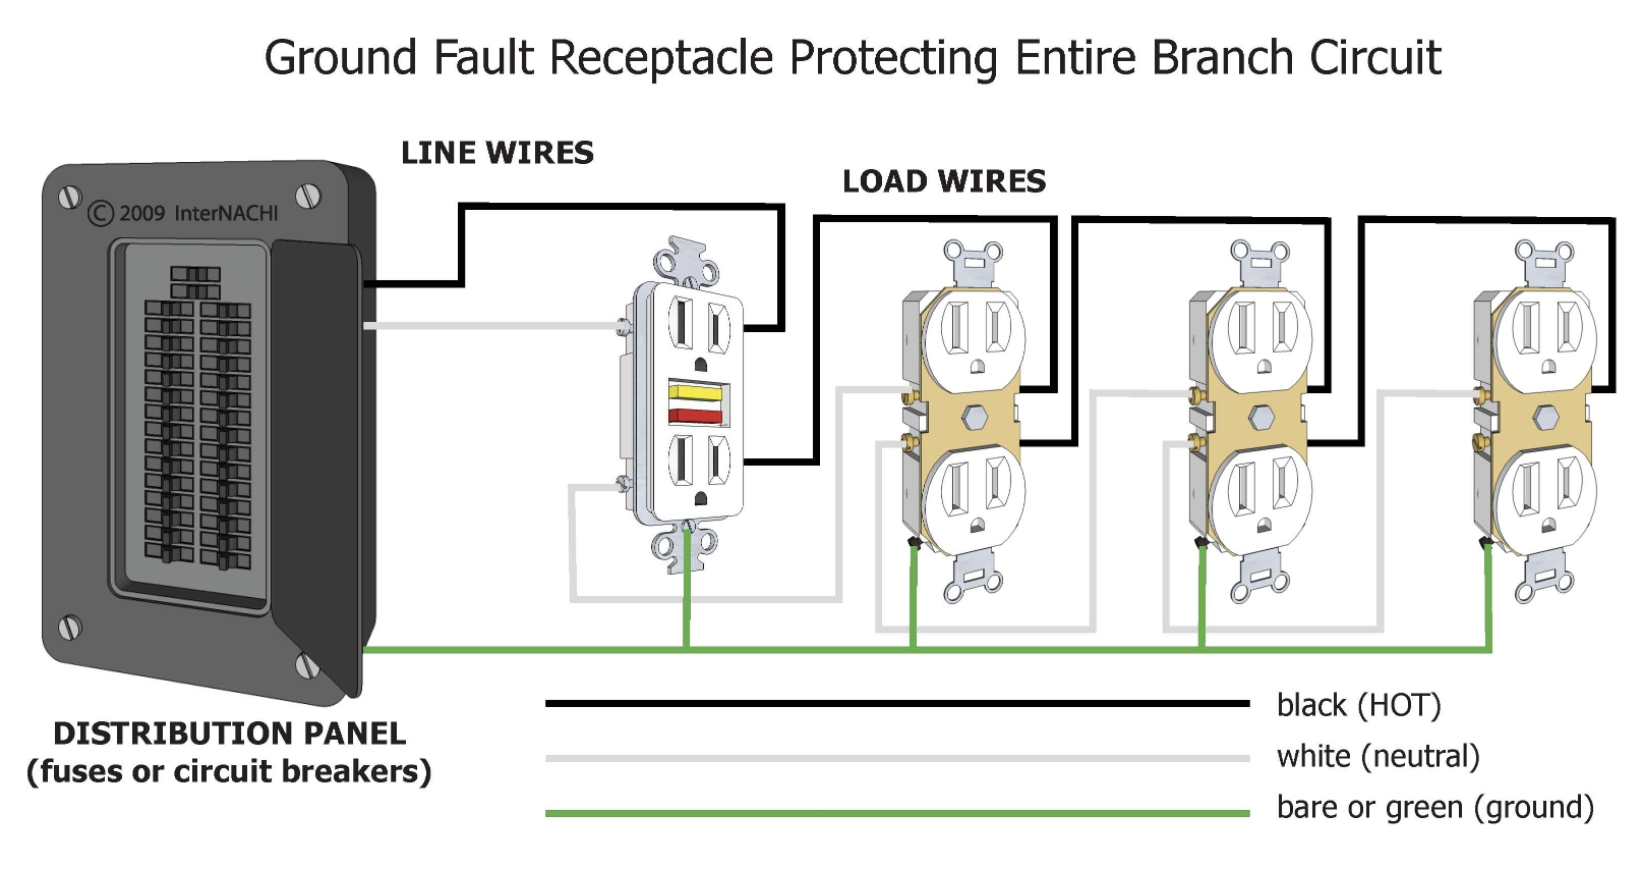 receptacle panel wiring a double receptacle schematic wiring inspecting gfci and afci protection - internachi